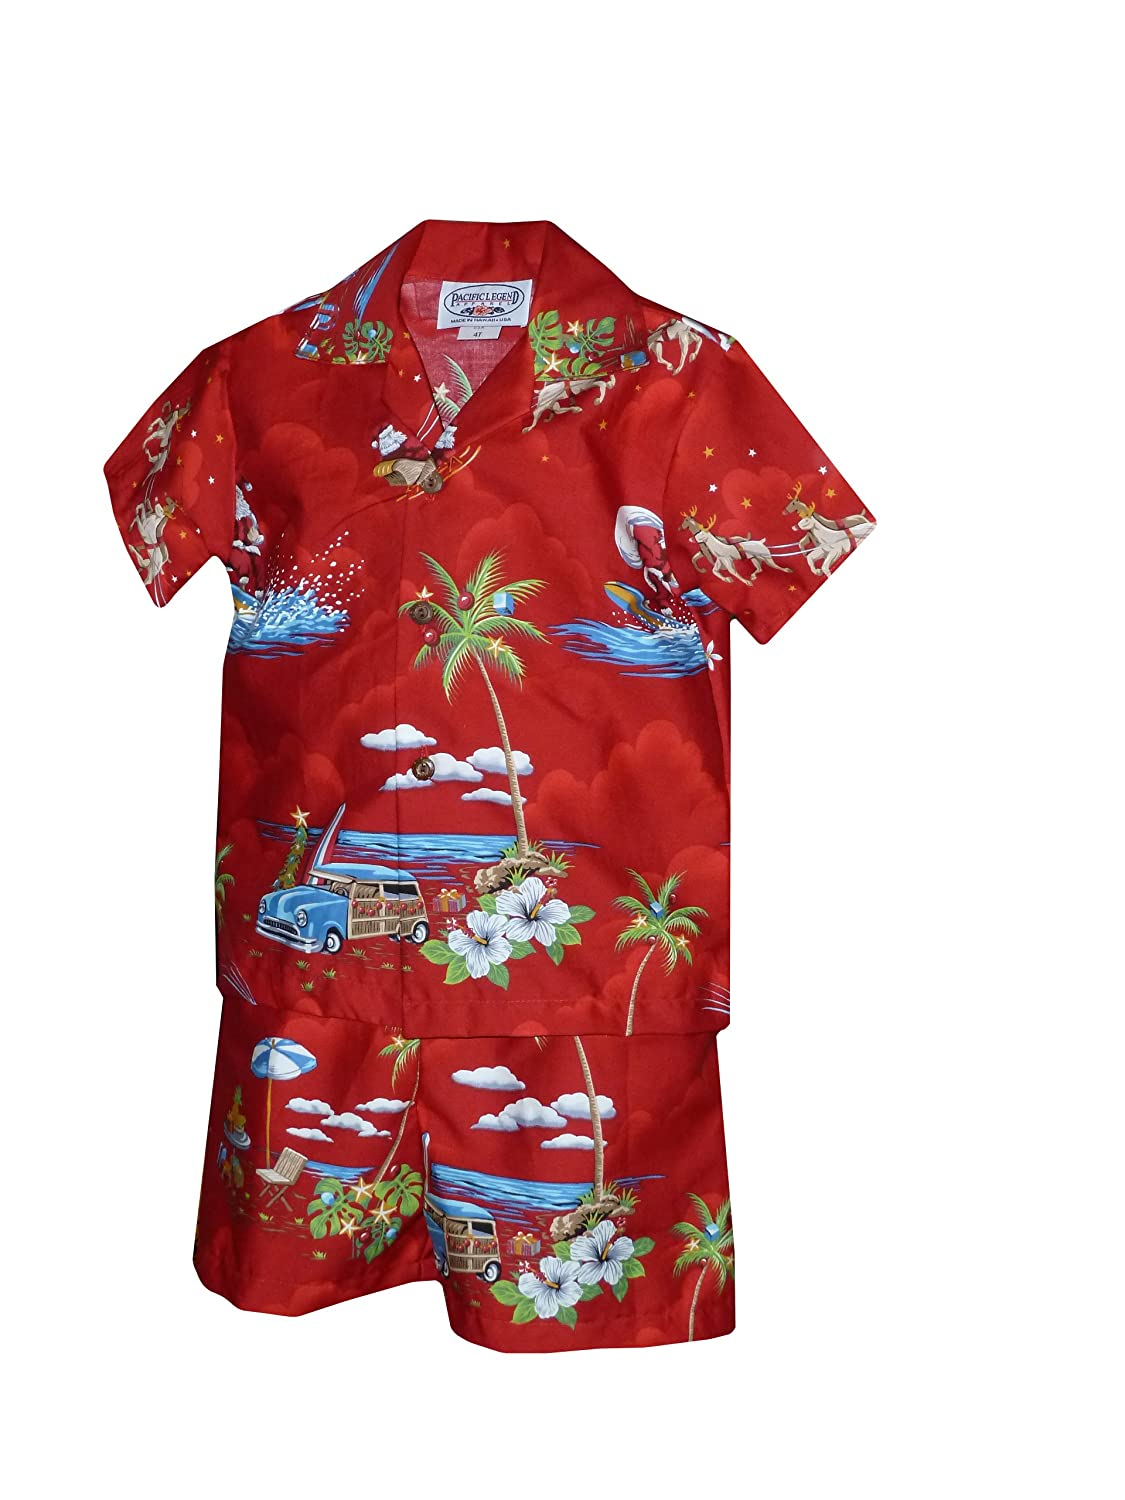 Free shipping on all U.S. orders - sold by MauiShirts. Matching Christmas  outfit for family. Toddler cabana set  361a90c43